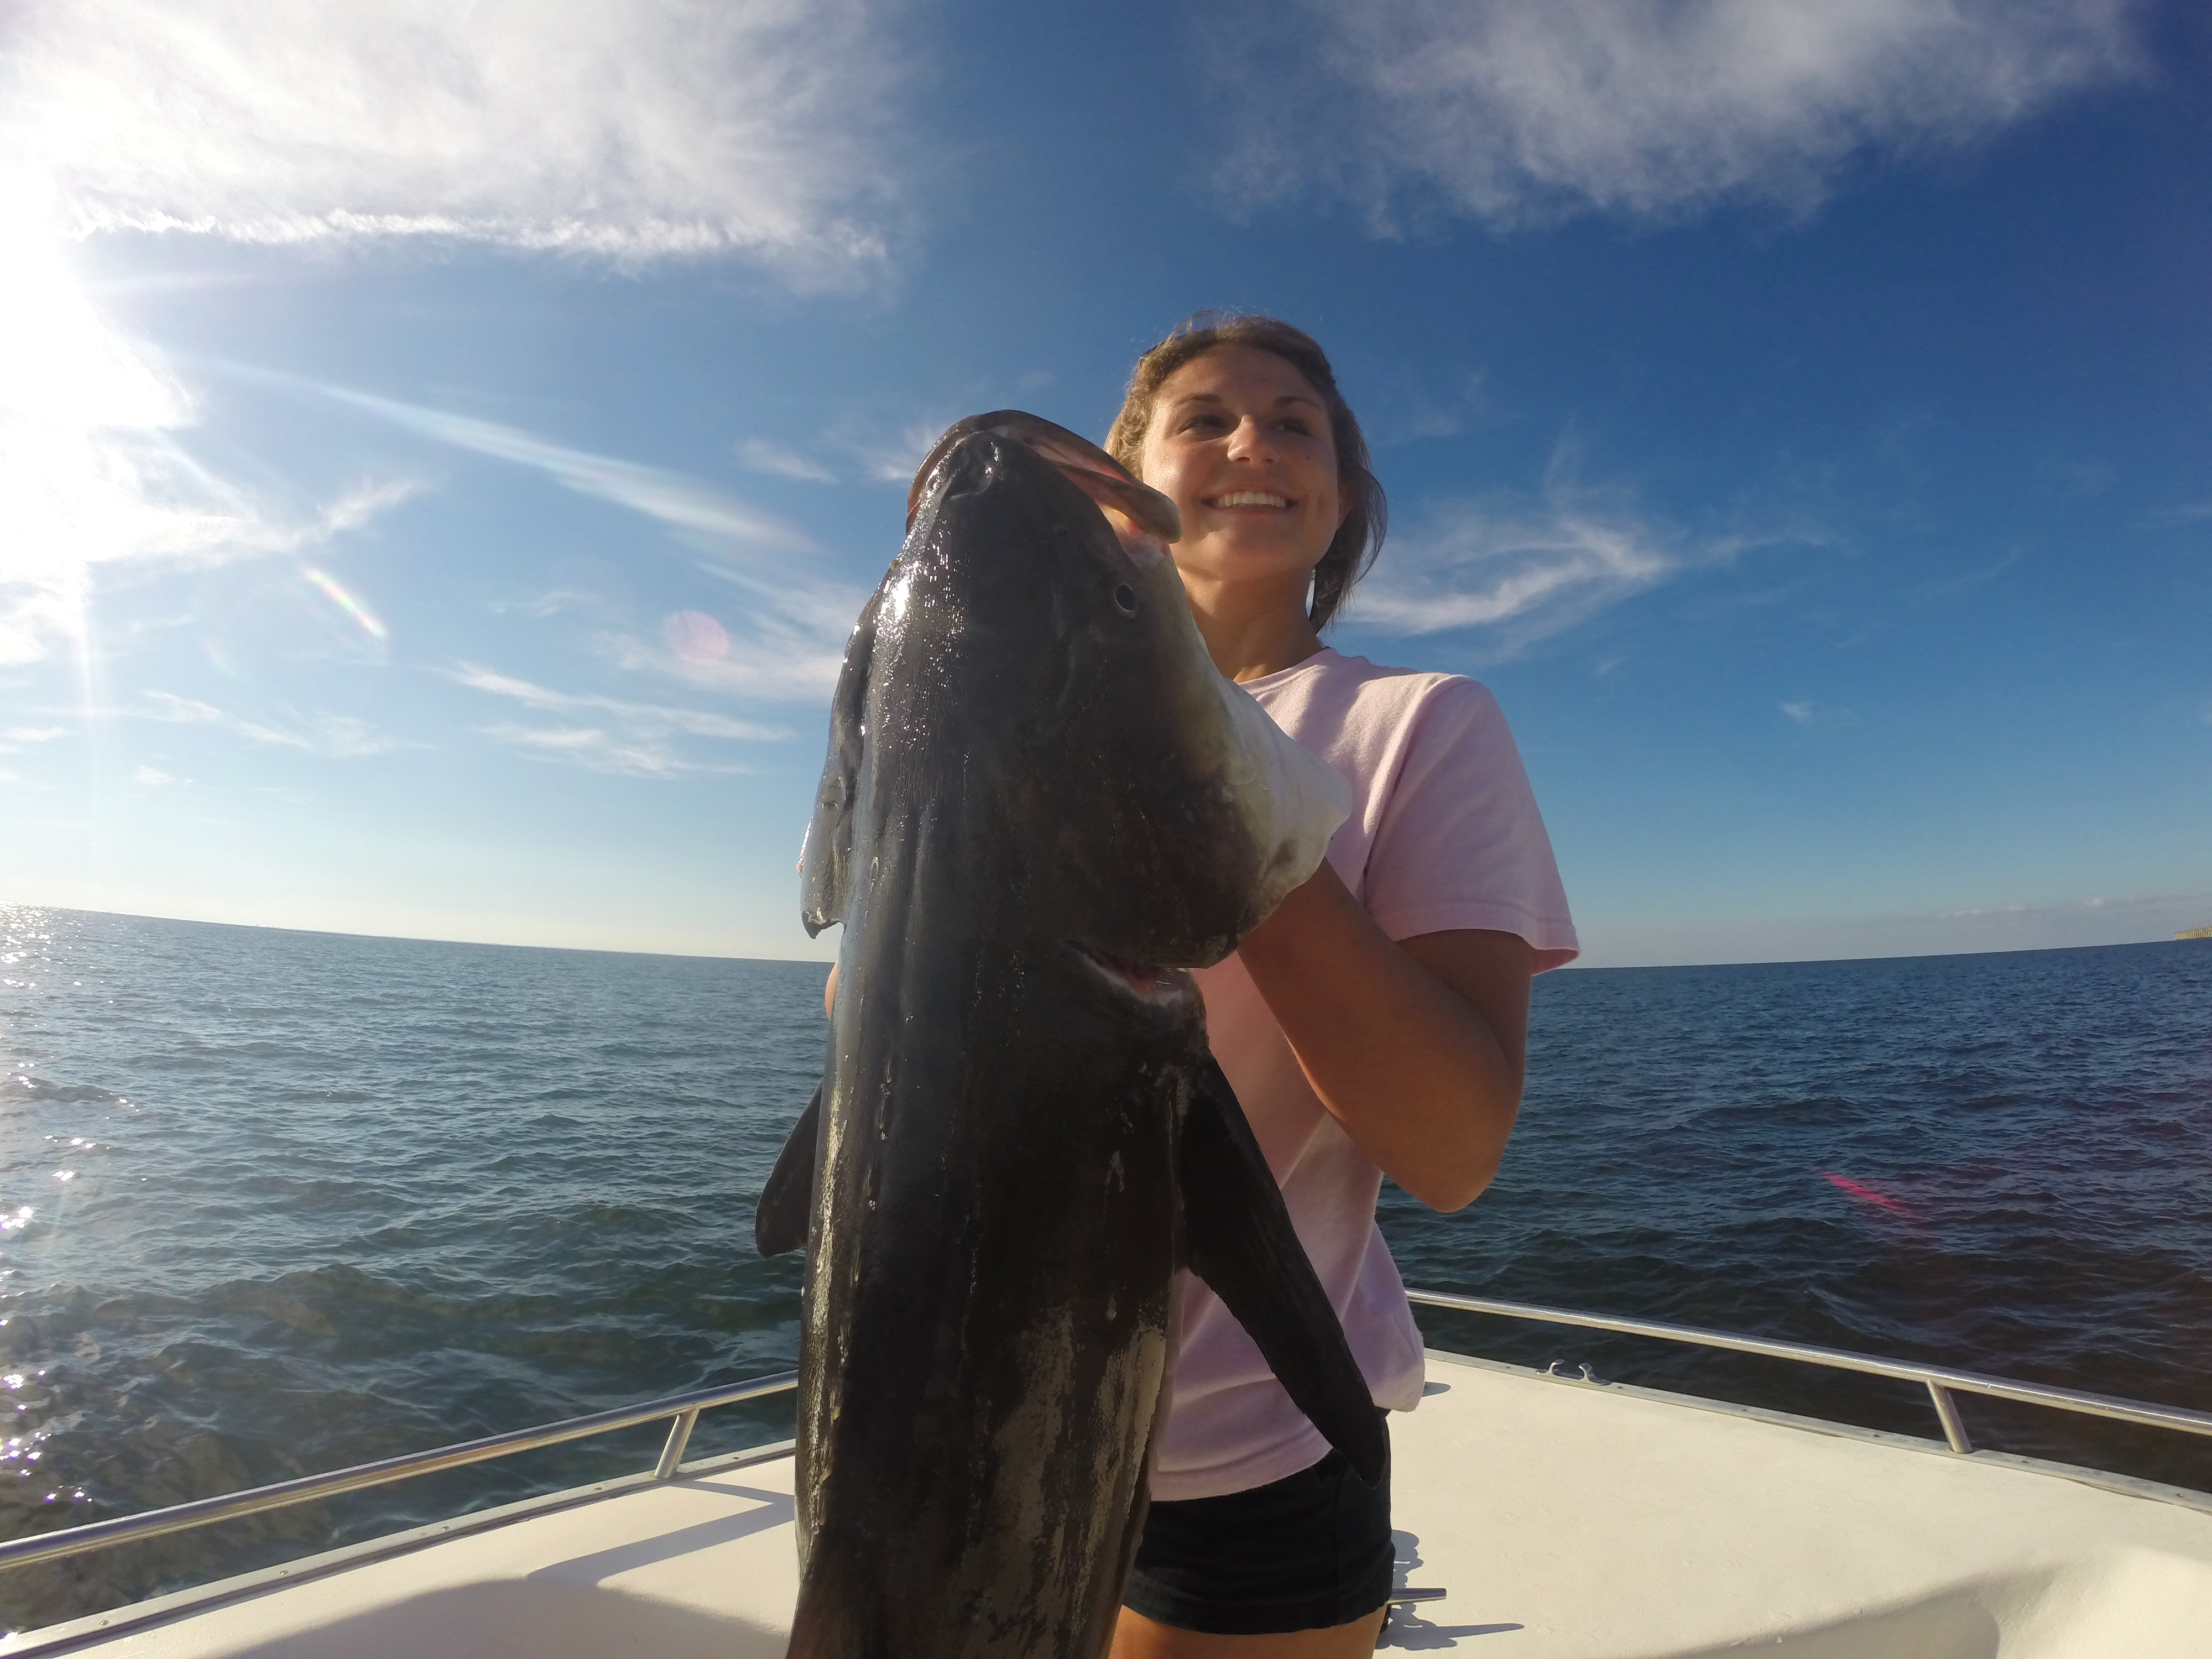 A woman smiles as she holds up a massive cobia